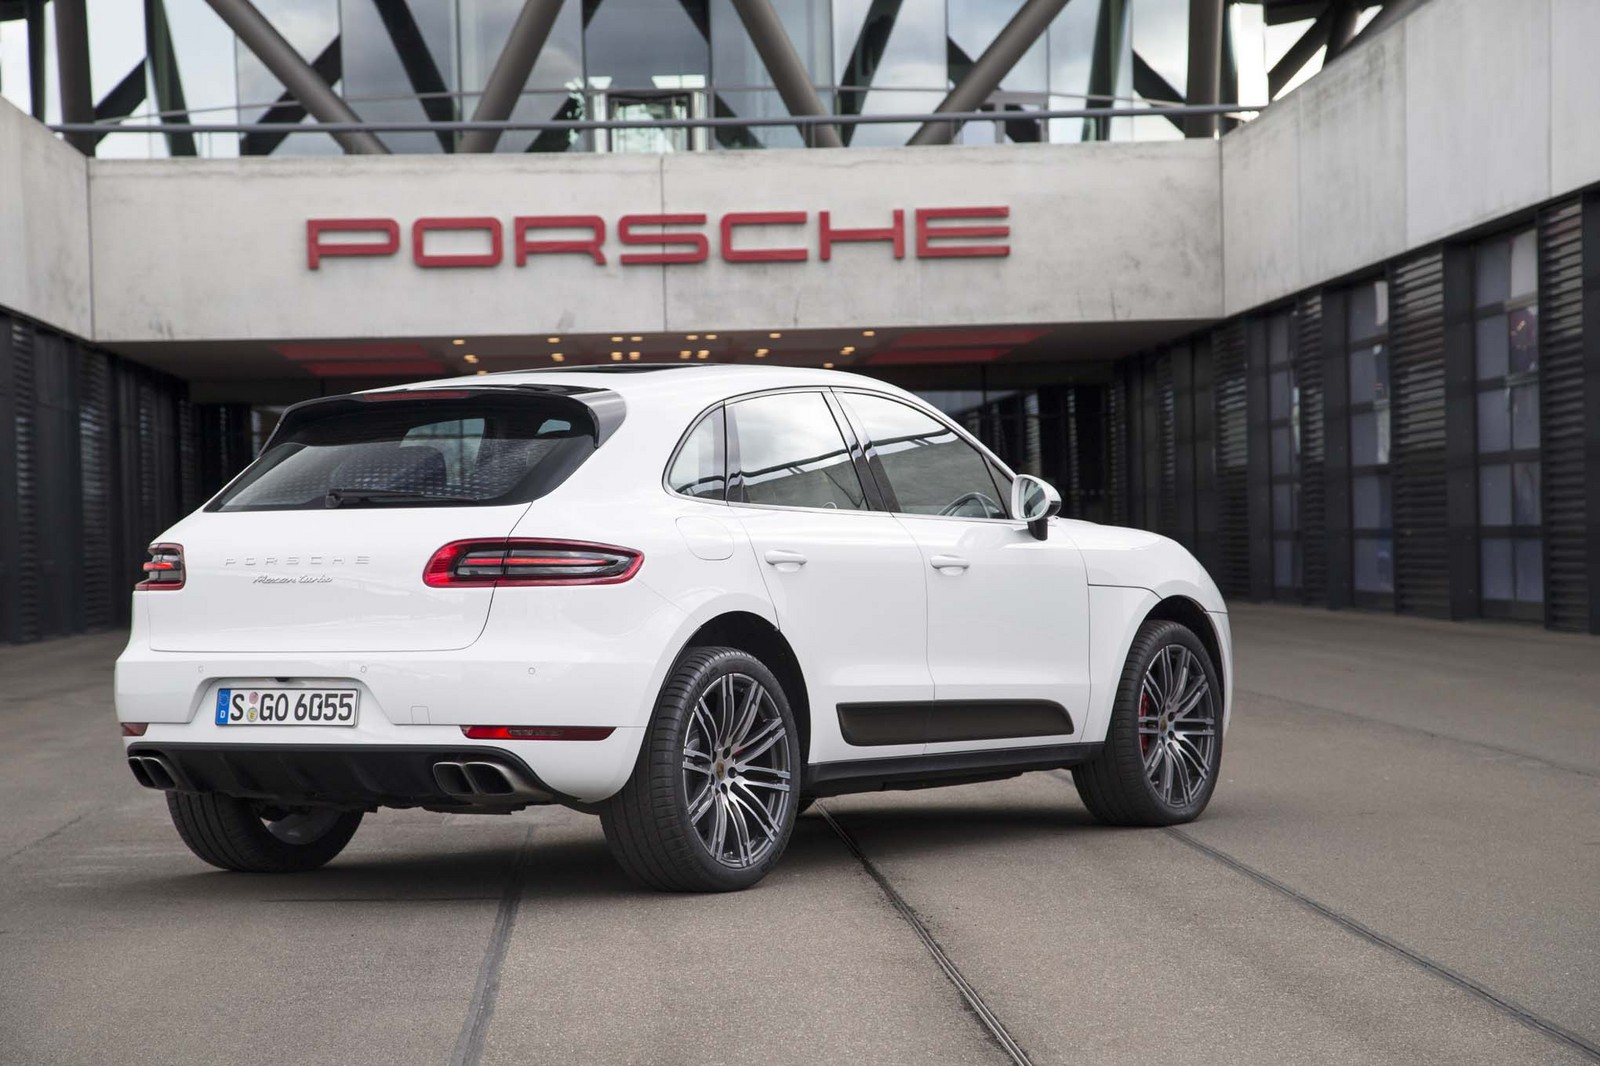 stock 2015 porsche macan turbo 1/4 mile trap speeds 0-60